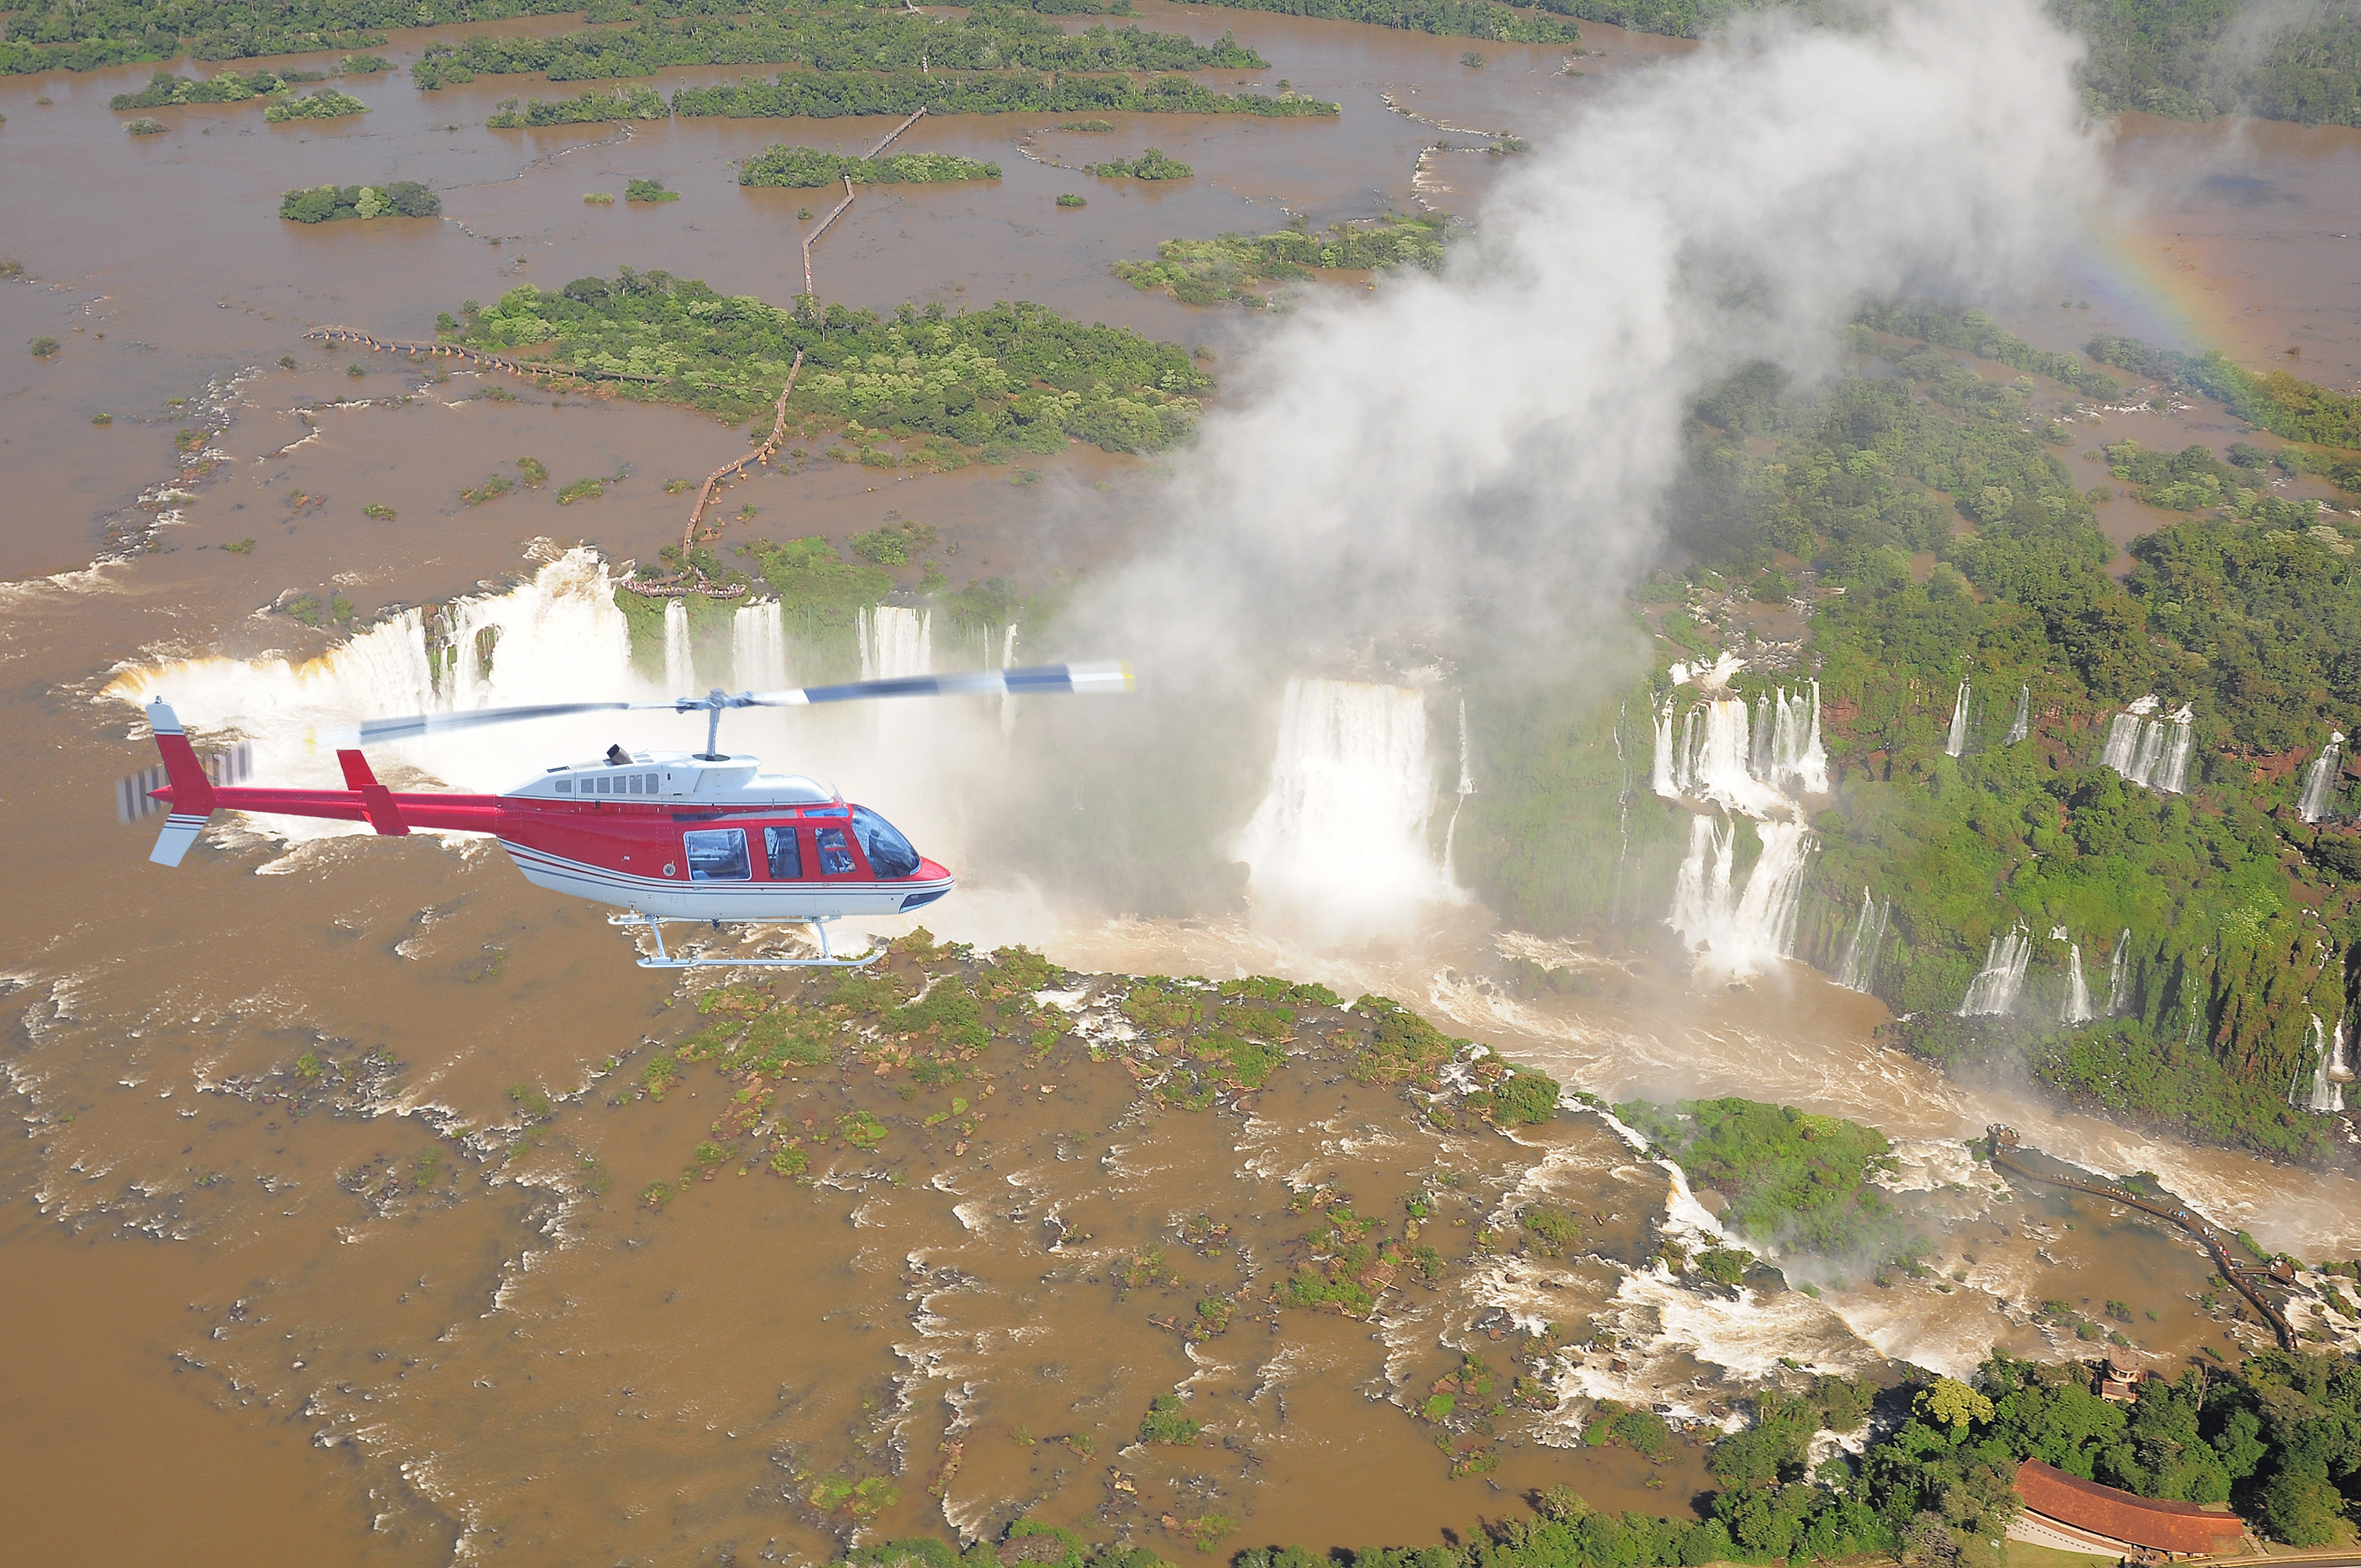 Helicopter above Iguazu Falls.